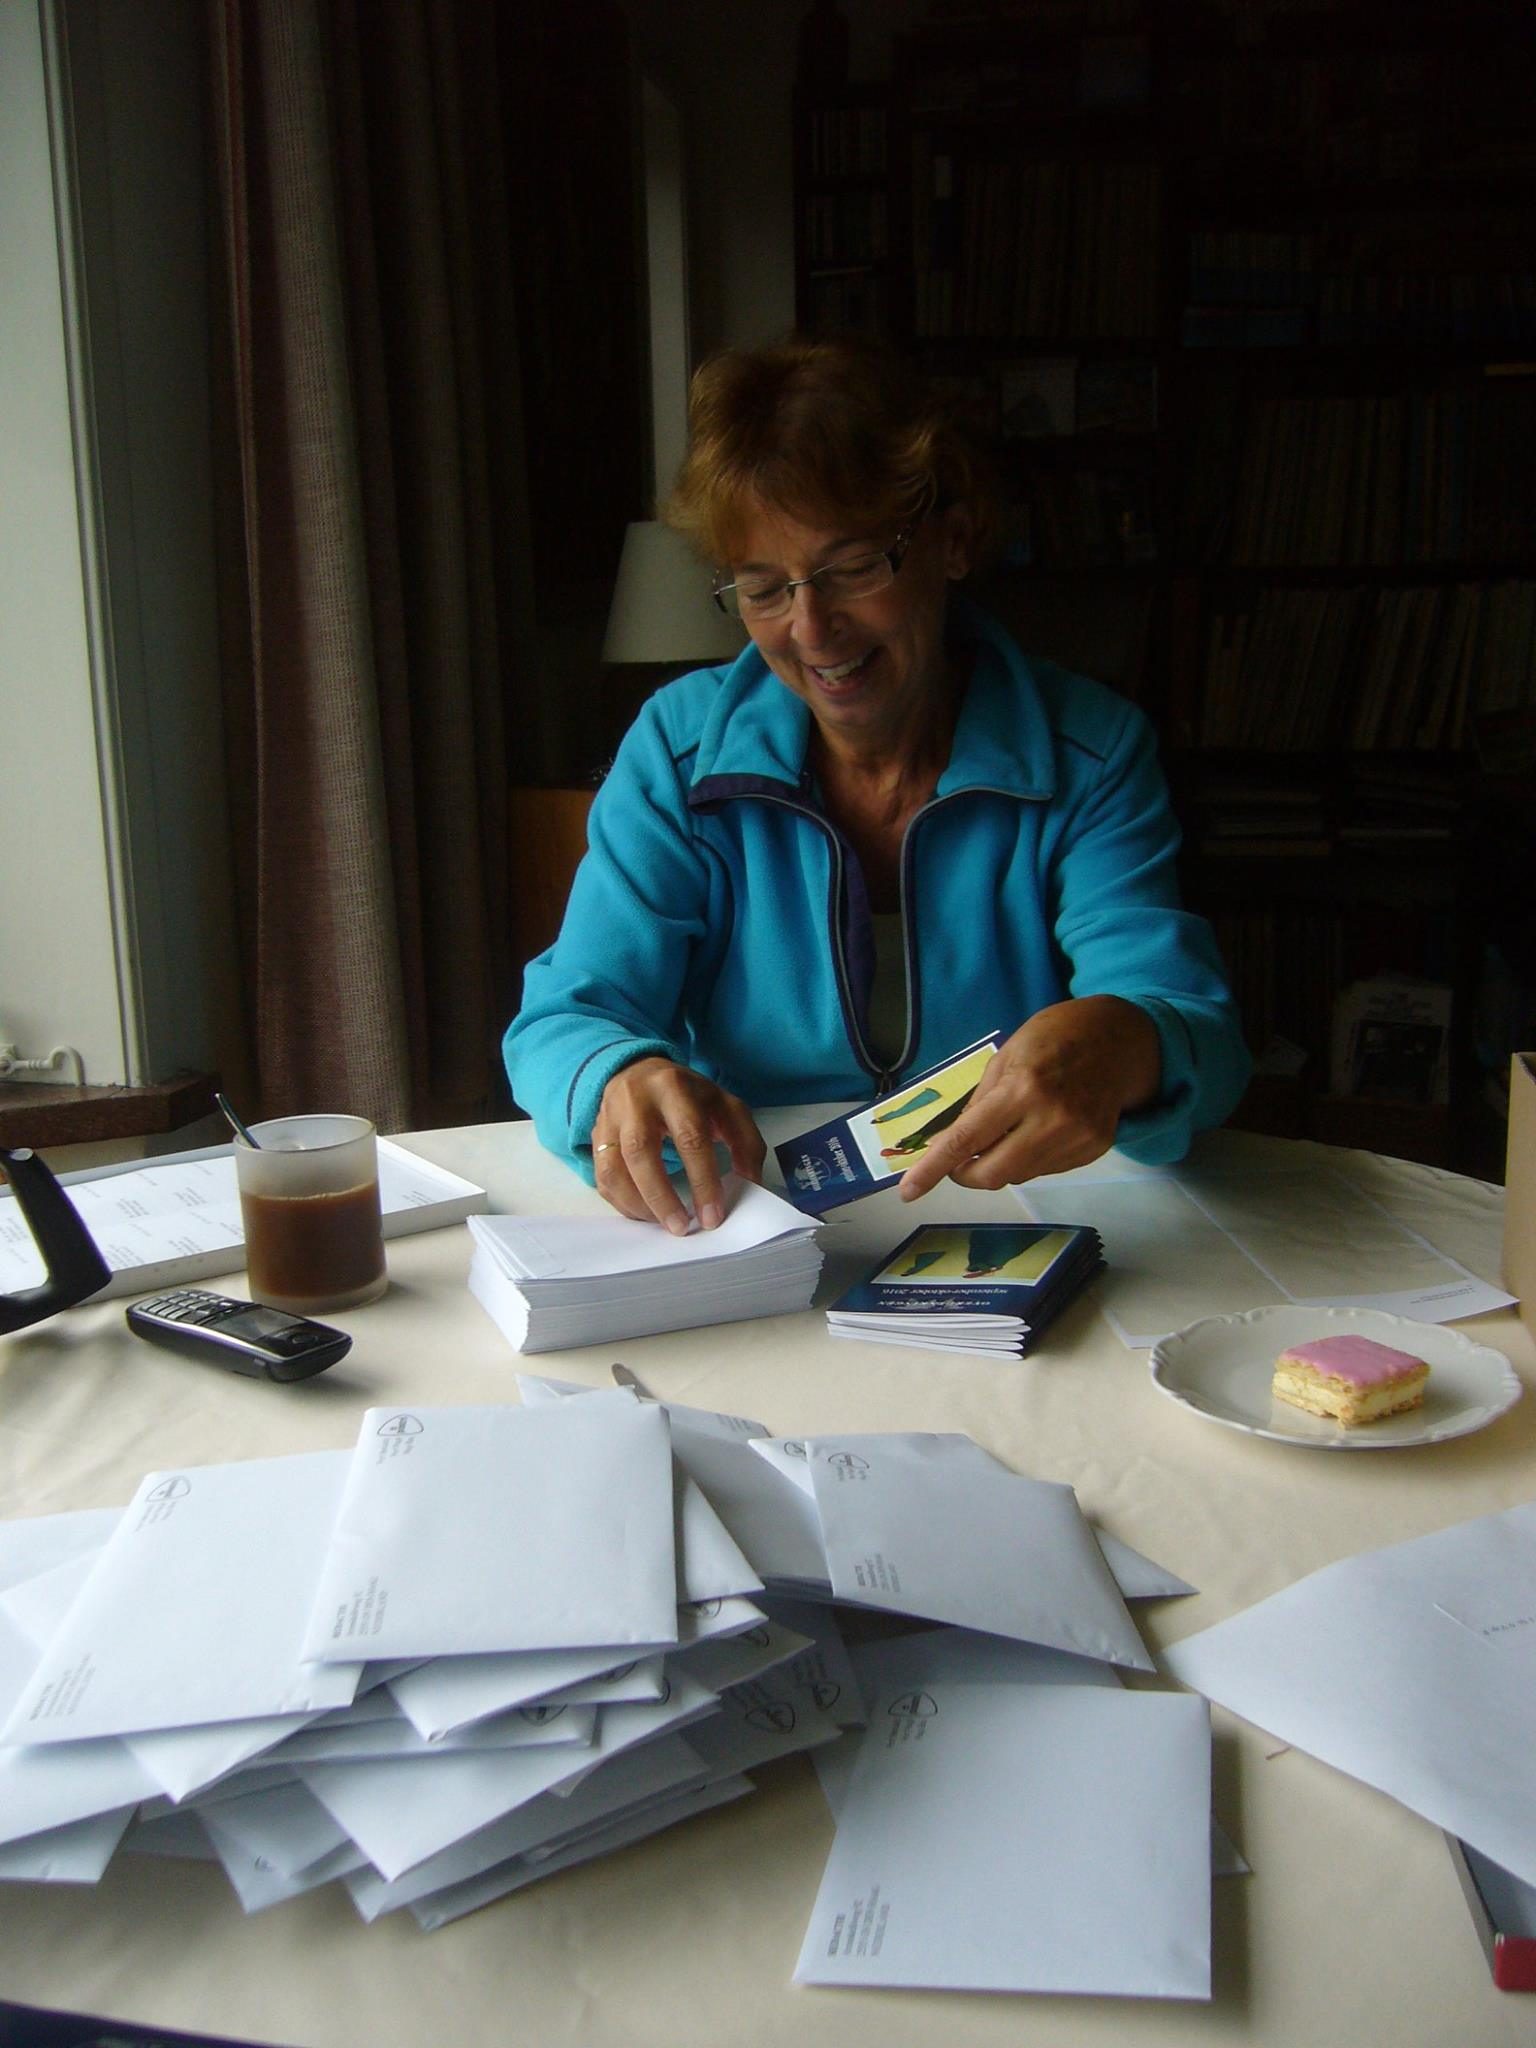 Patricia Preparing To Mail Copies Of Dutch Edition To Subscribers2